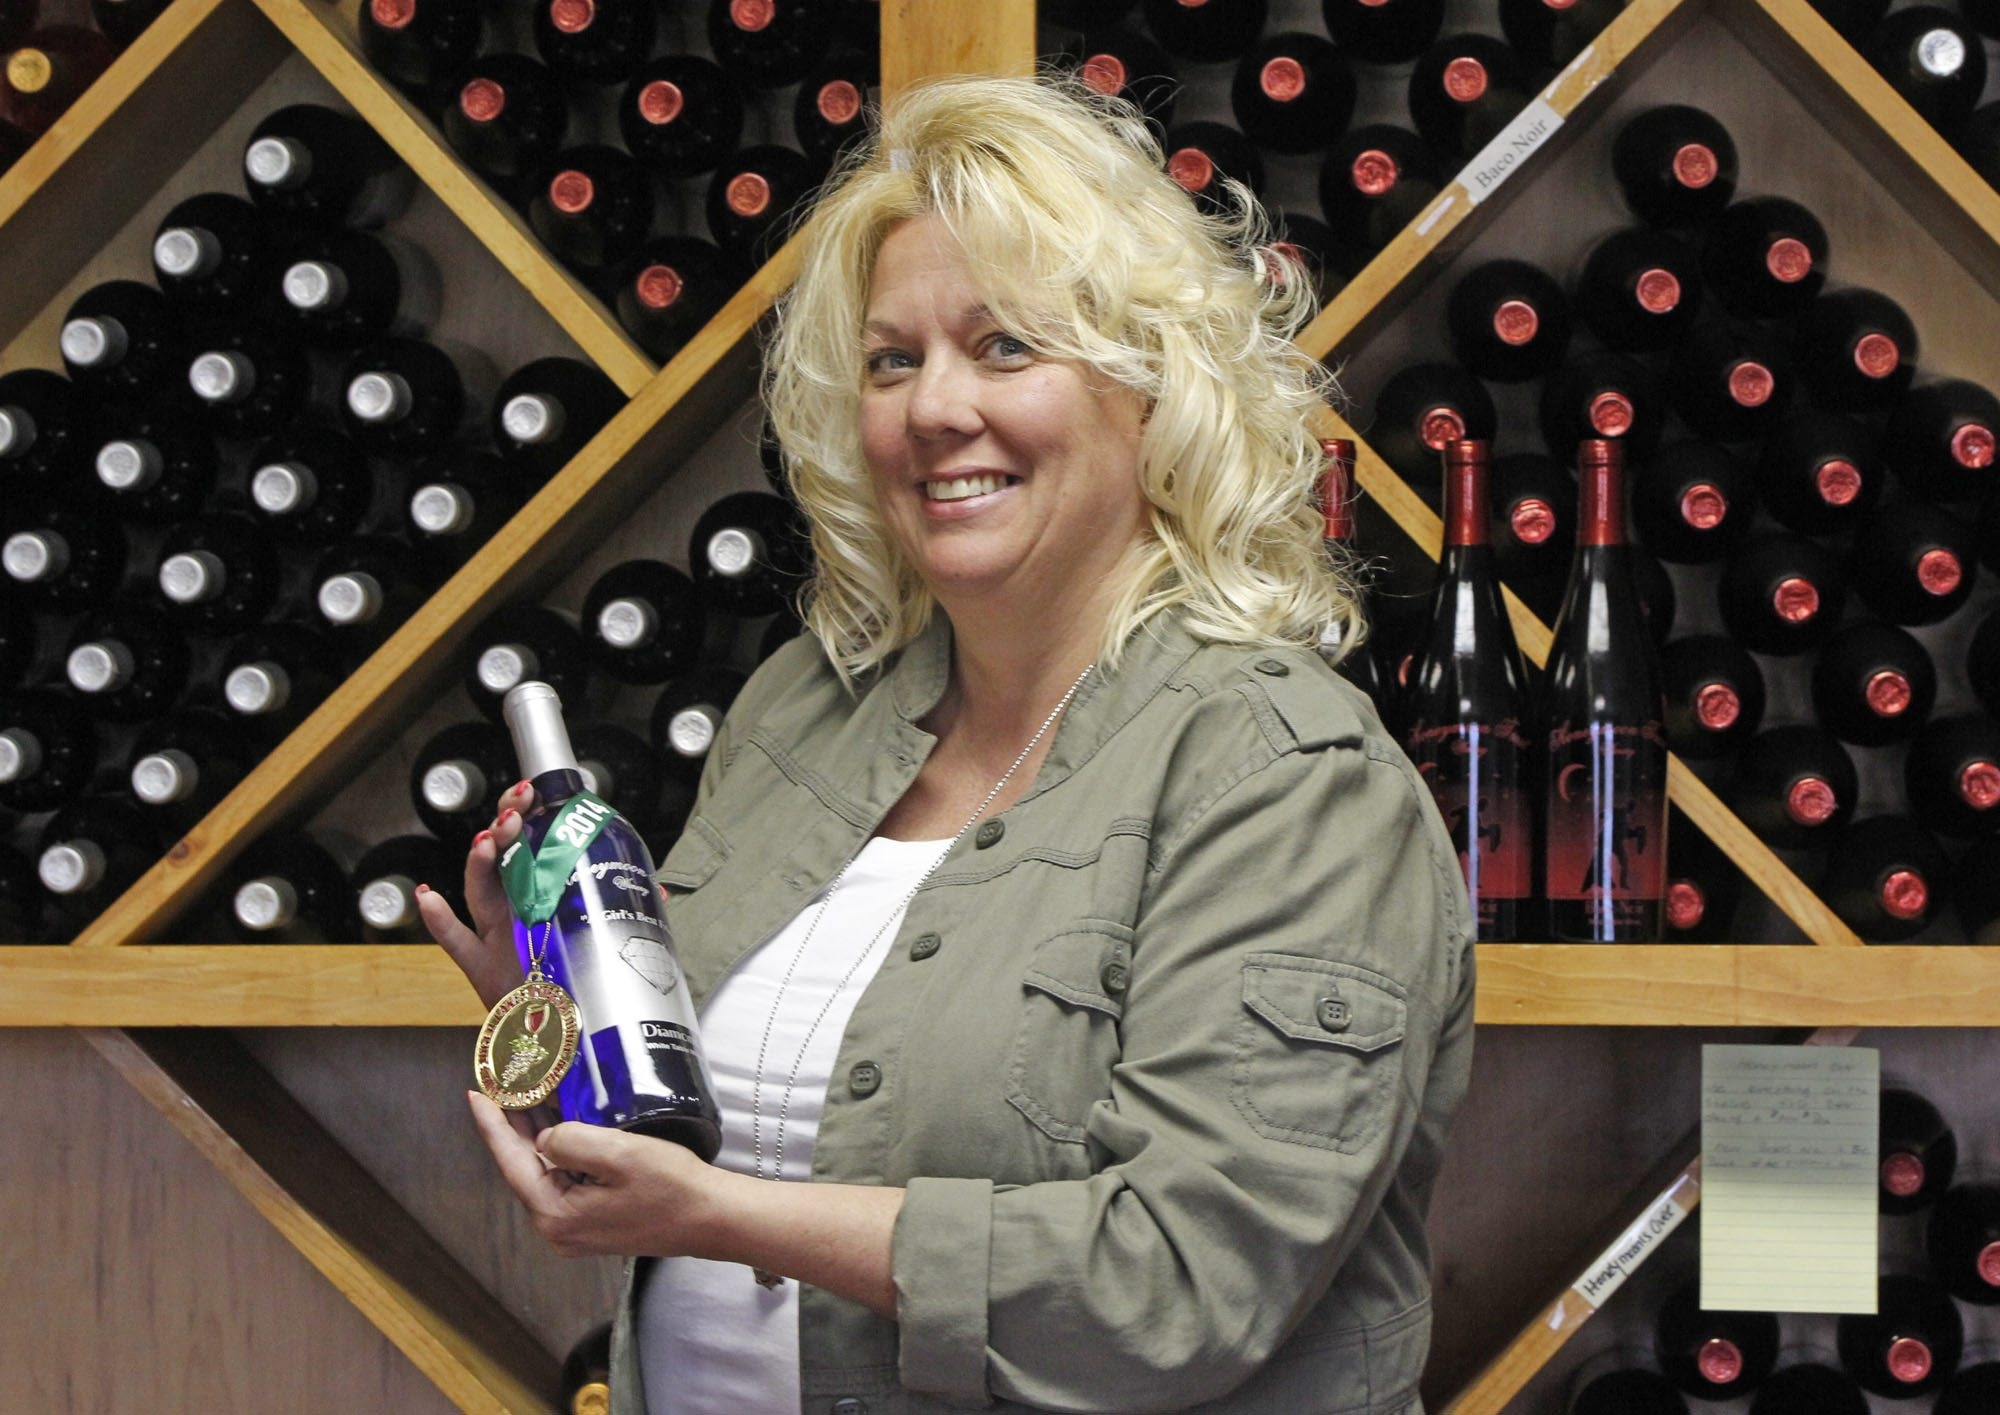 Lori Hoover, owner of Honeymoon Trail Winery in Lockport, displays one of her prize-winning wines.